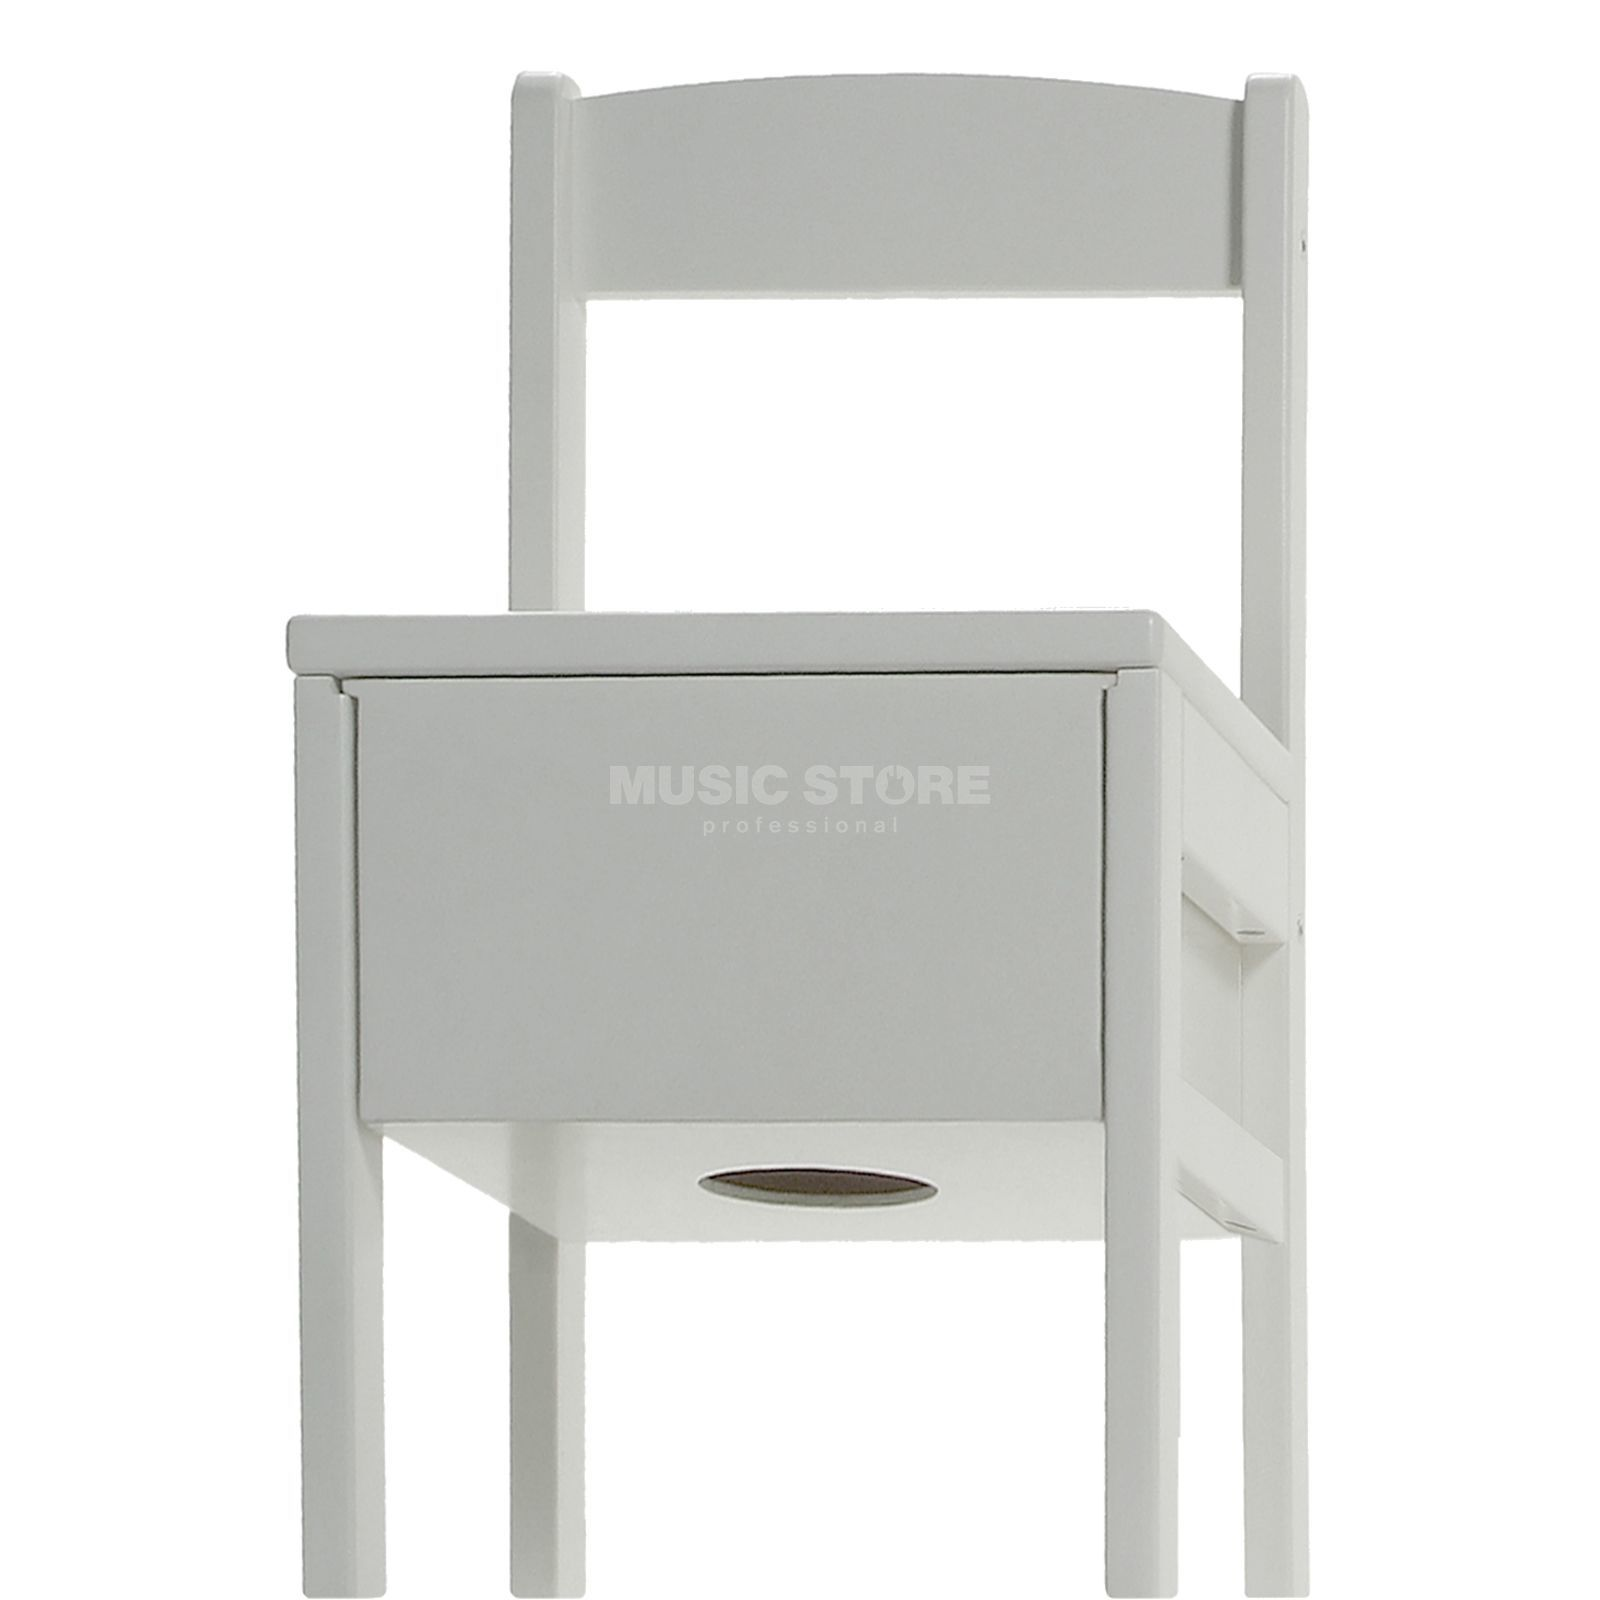 Baff Children Drumming Stool S, white Produktbillede